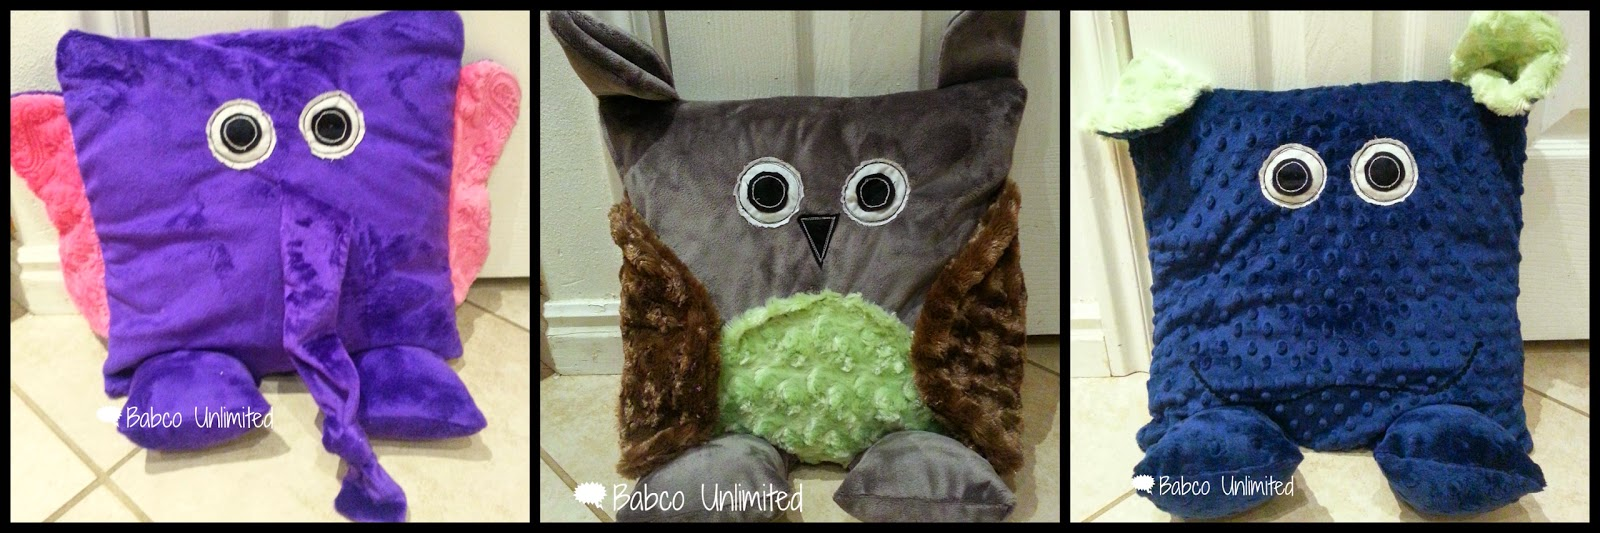 BabcoUnlimited.blogspot.com -- Animal Pillows